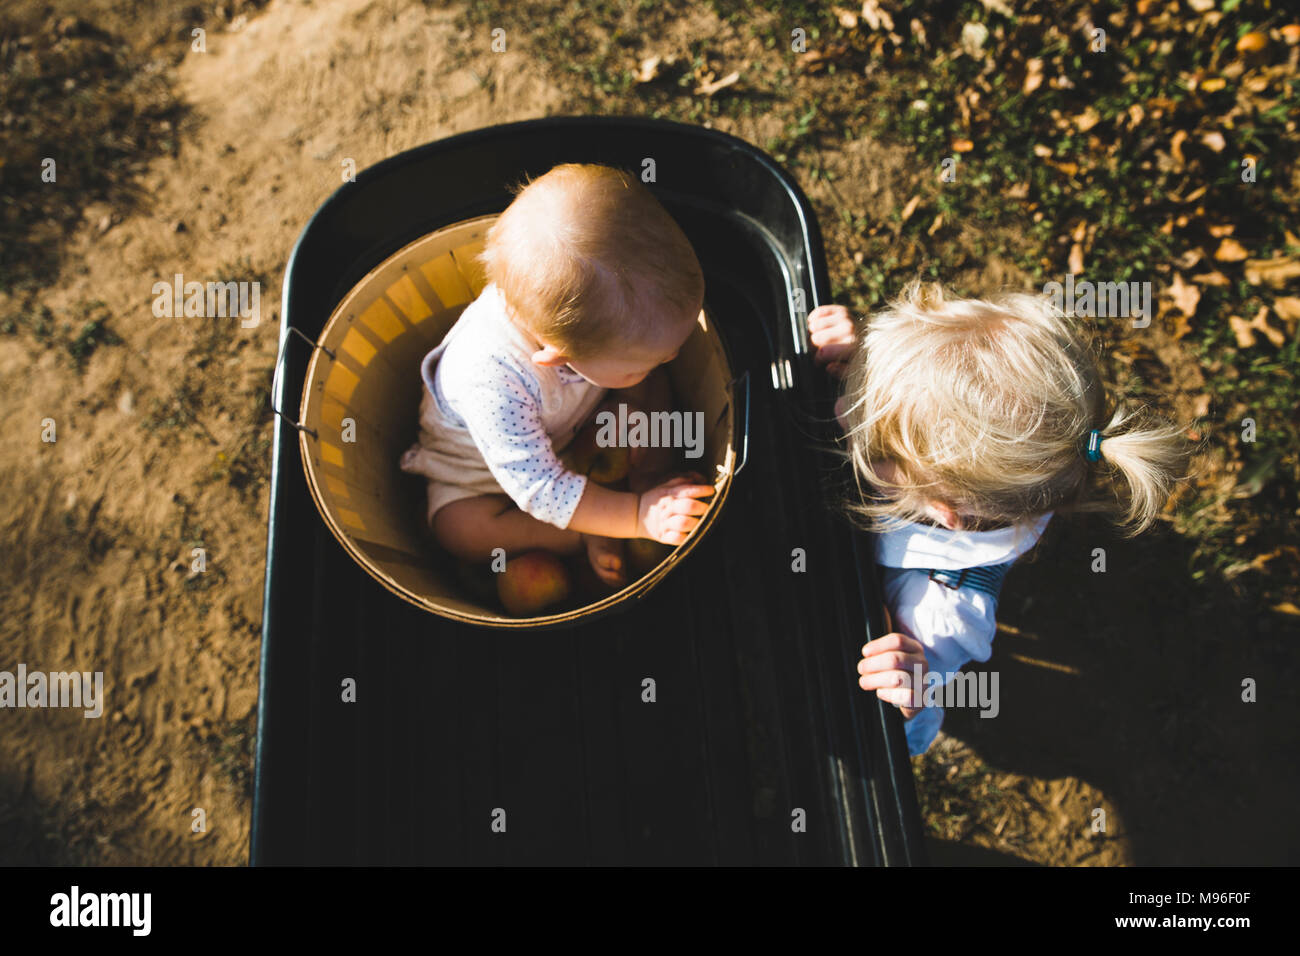 Girl and baby together in orchard baskets - Stock Image